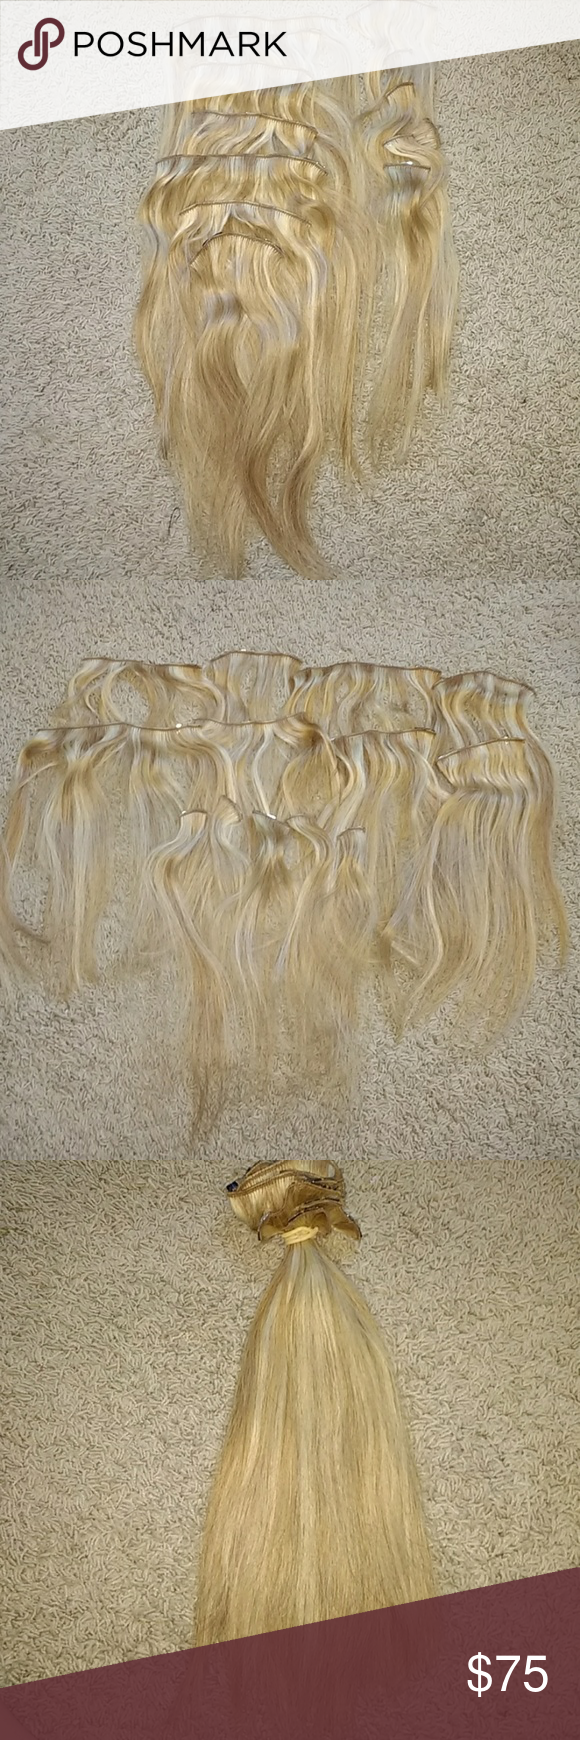 Lt Blonde Verigated Human Hair Clip In Extensions